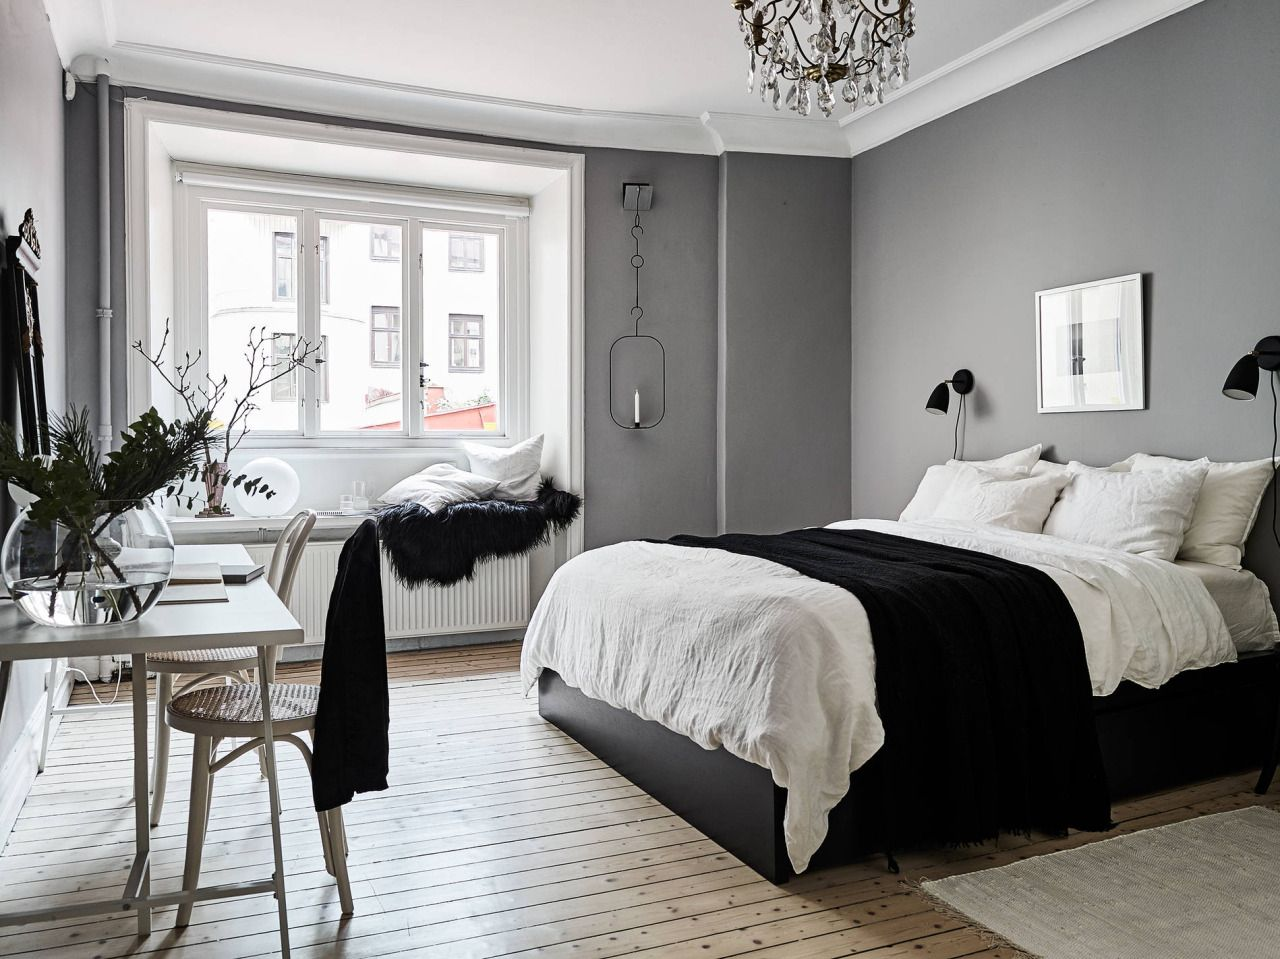 Window seat with bed  scandinavian bedroom with window seat  bedroom  pinterest  window